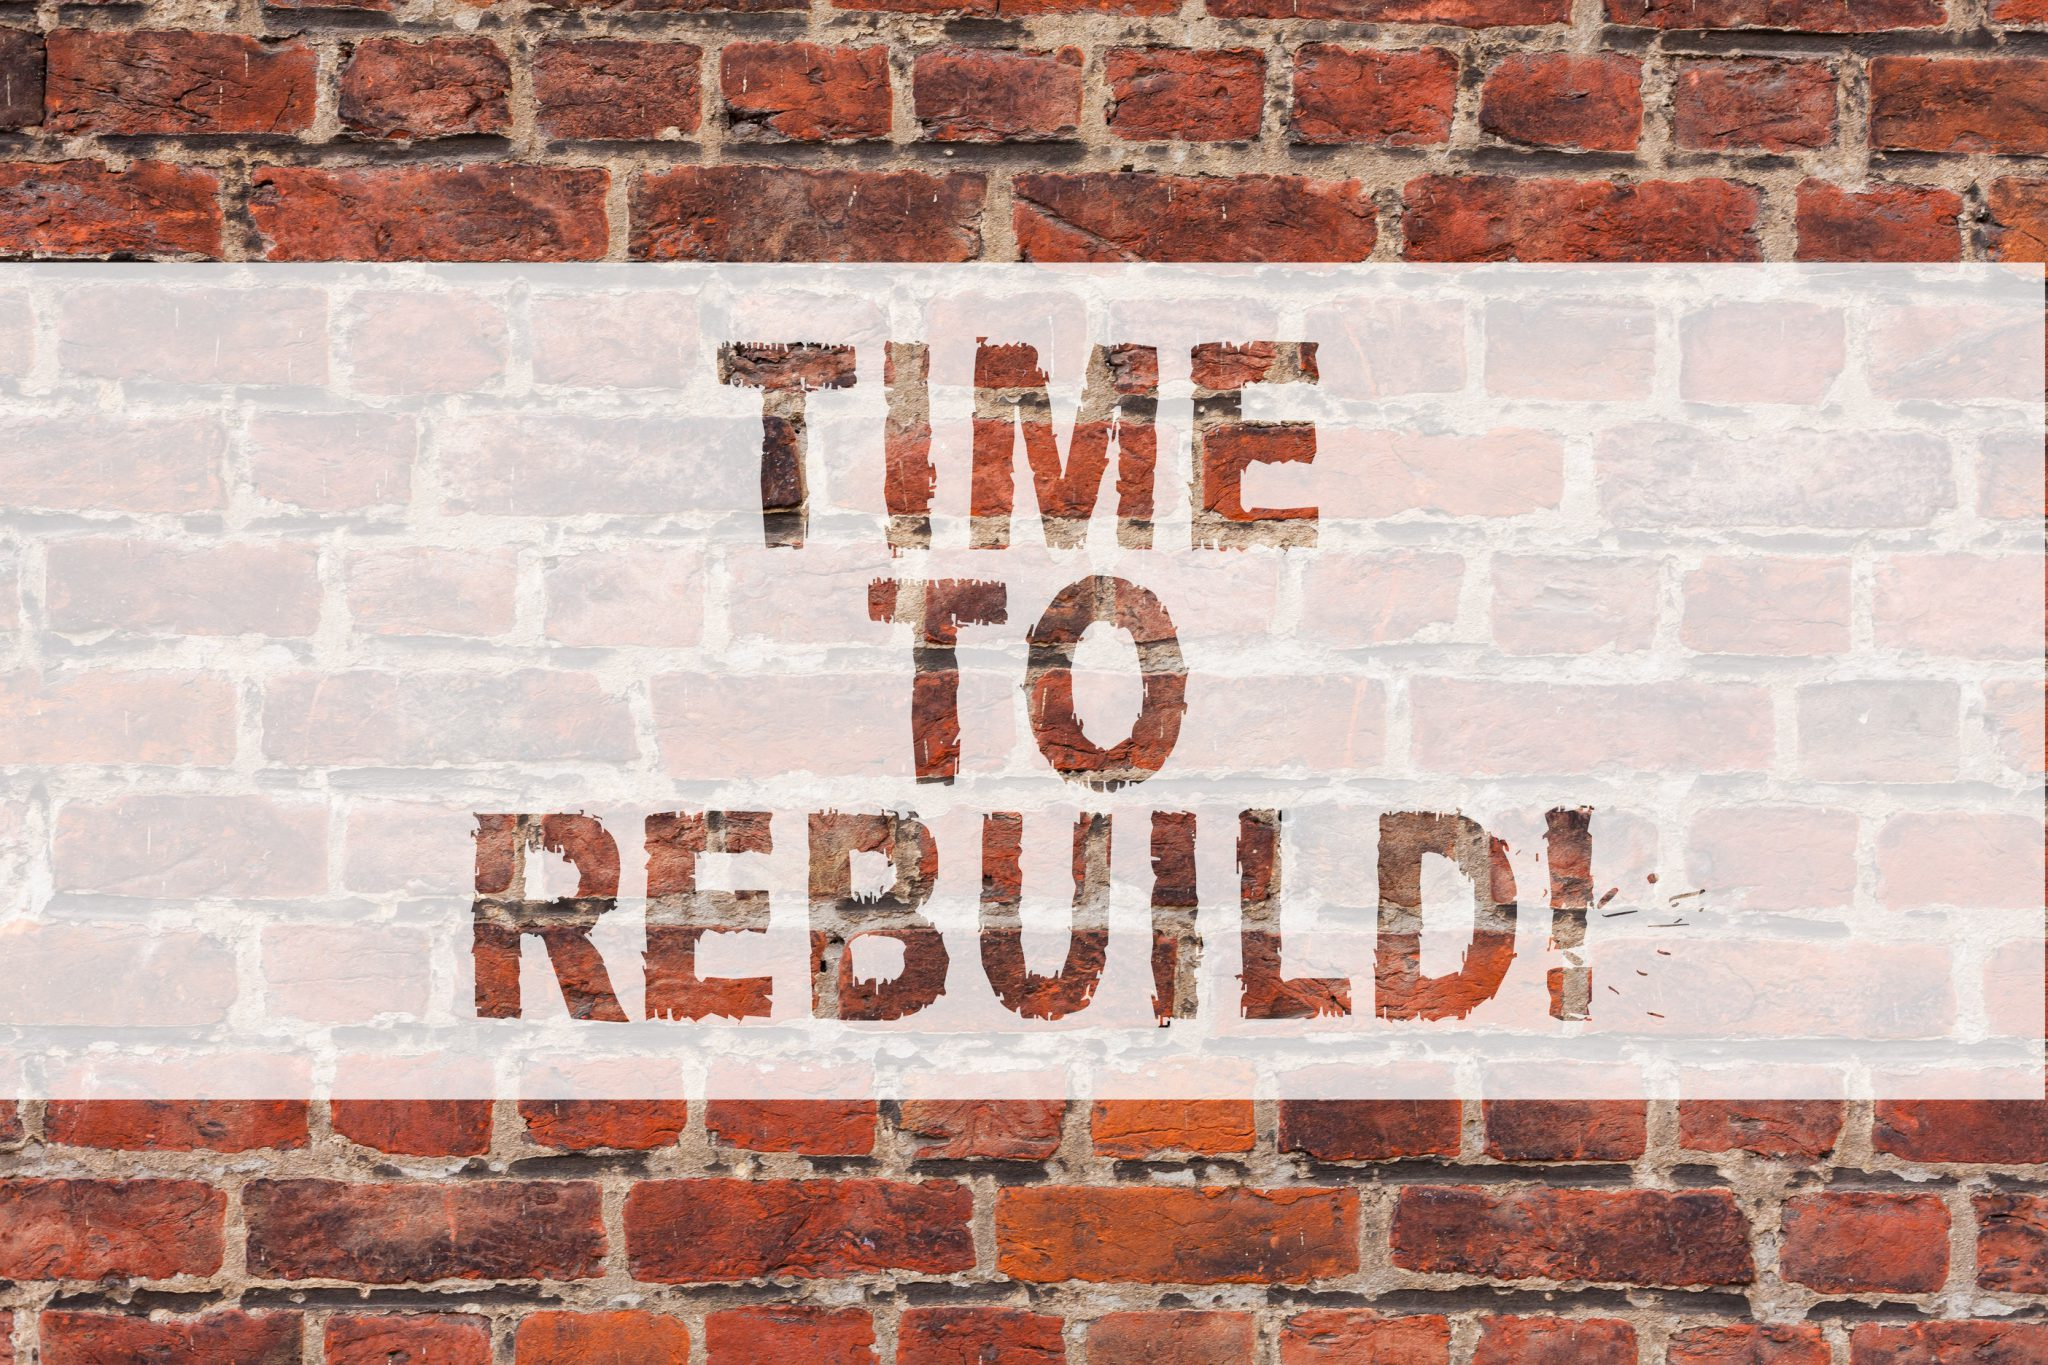 Plan to rebuild your business post Covid19